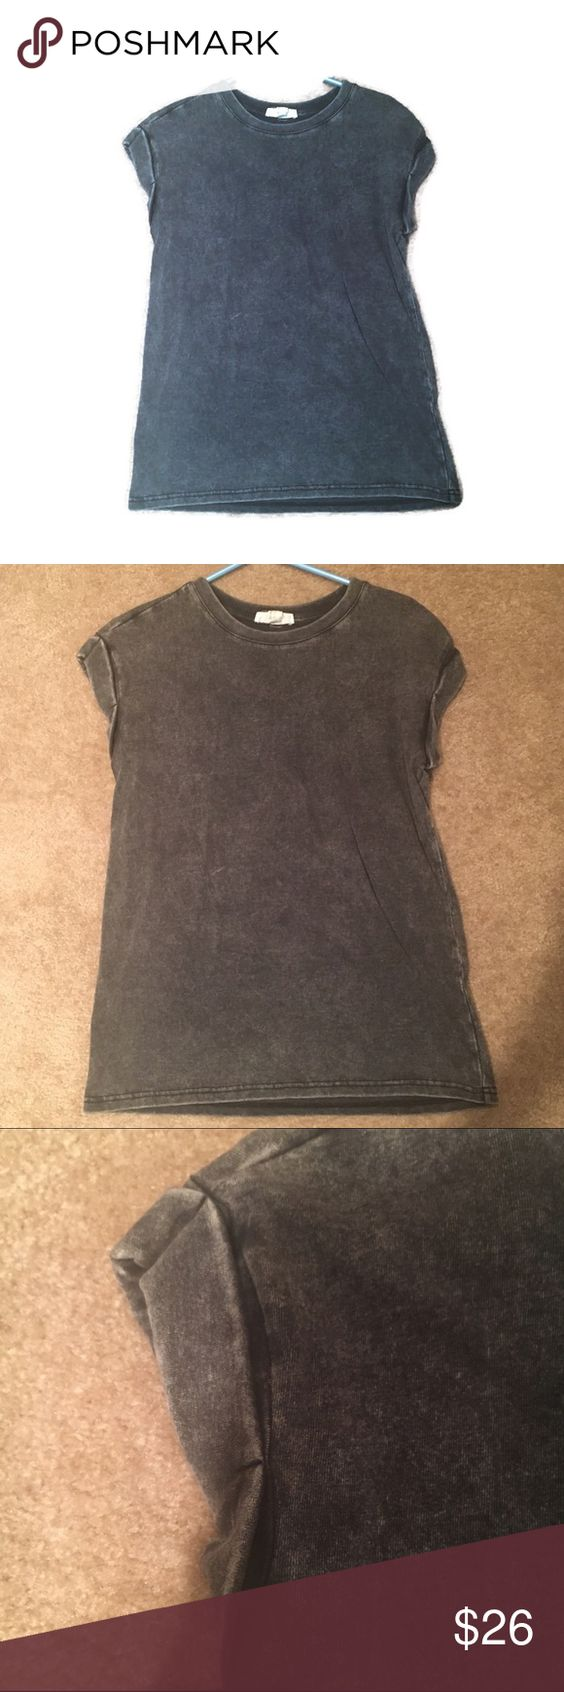 Grey acid wash grunge tee 16 inch bust and 26 inch length. Perfect condition grunge look Forever 21 Tops Tees - Short Sleeve